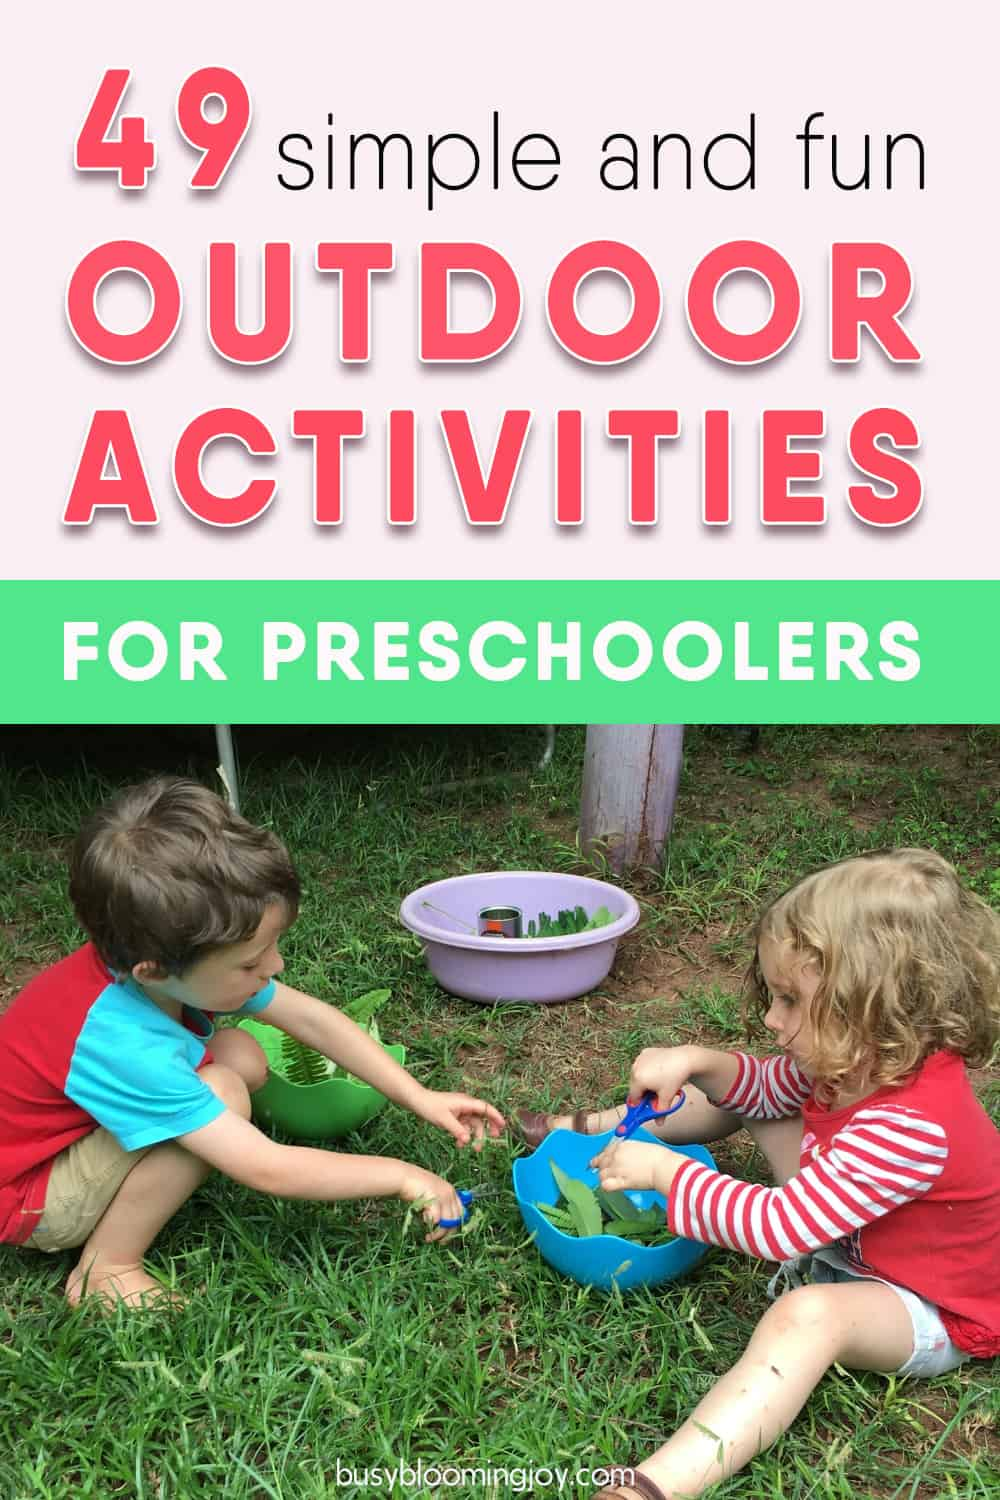 49 Simple & fun outdoor activities for preschoolers (that toddlers will love too)